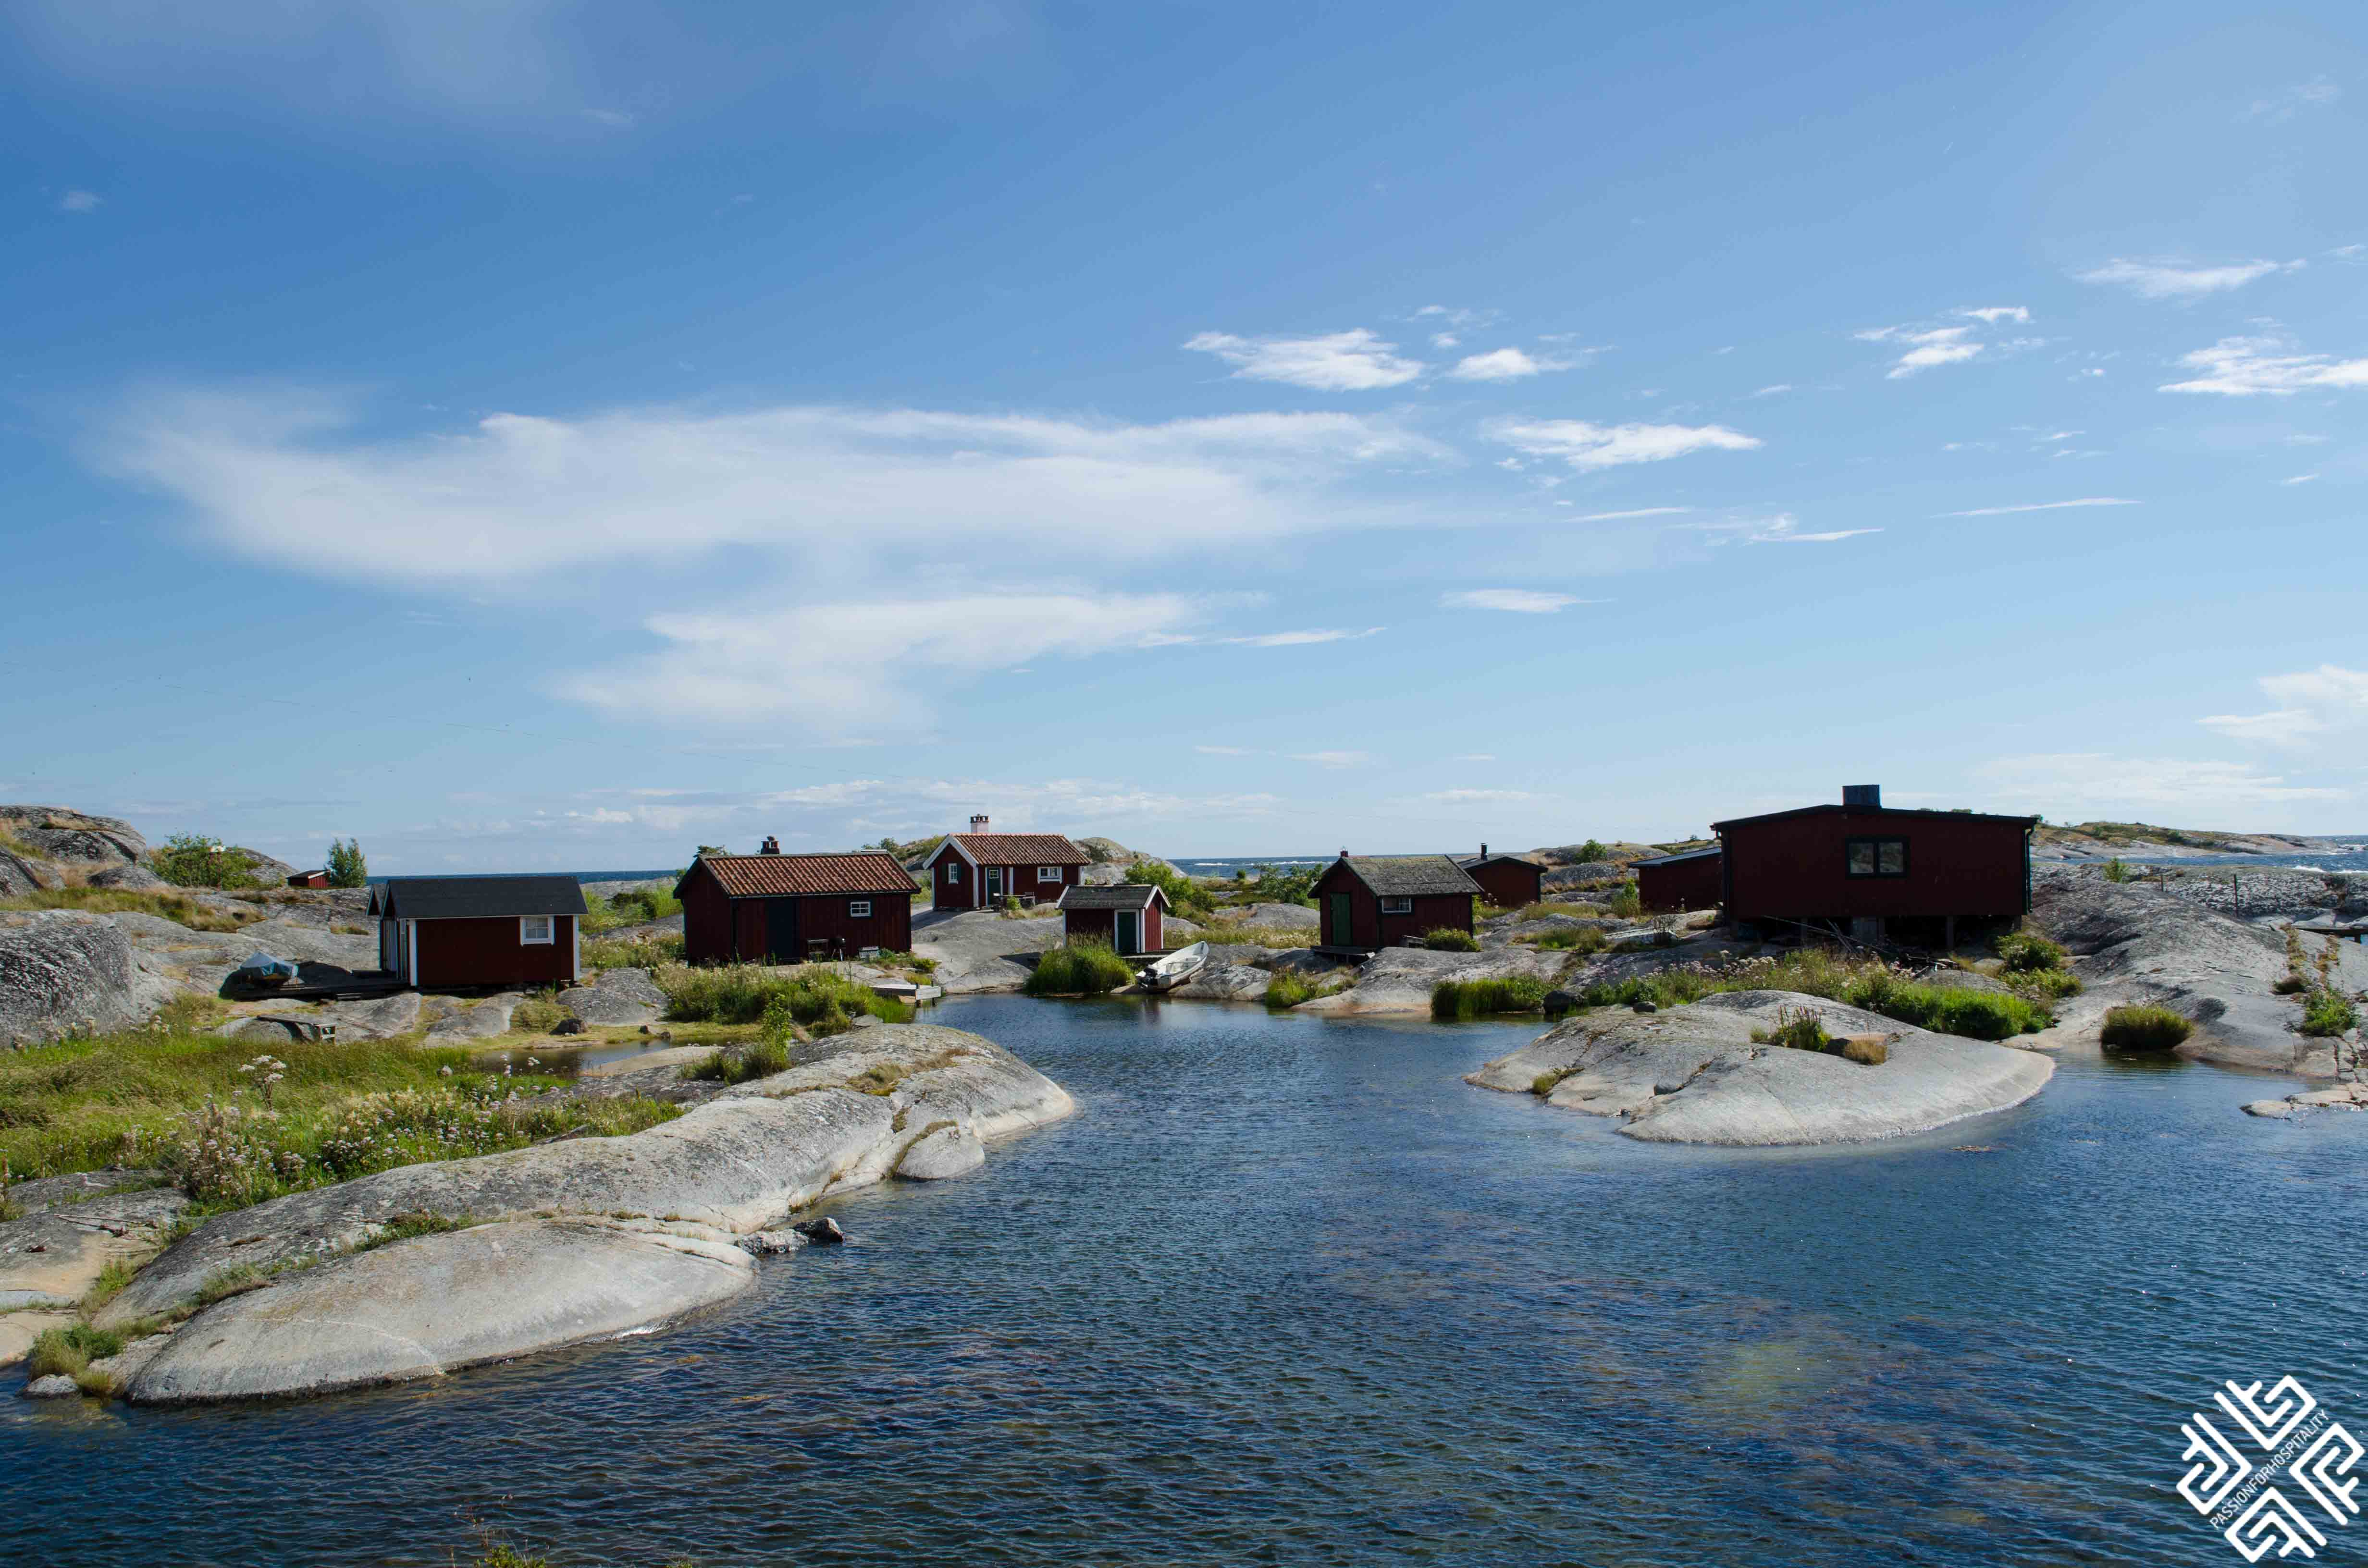 uvudskär attracts sea travellers and tourists.